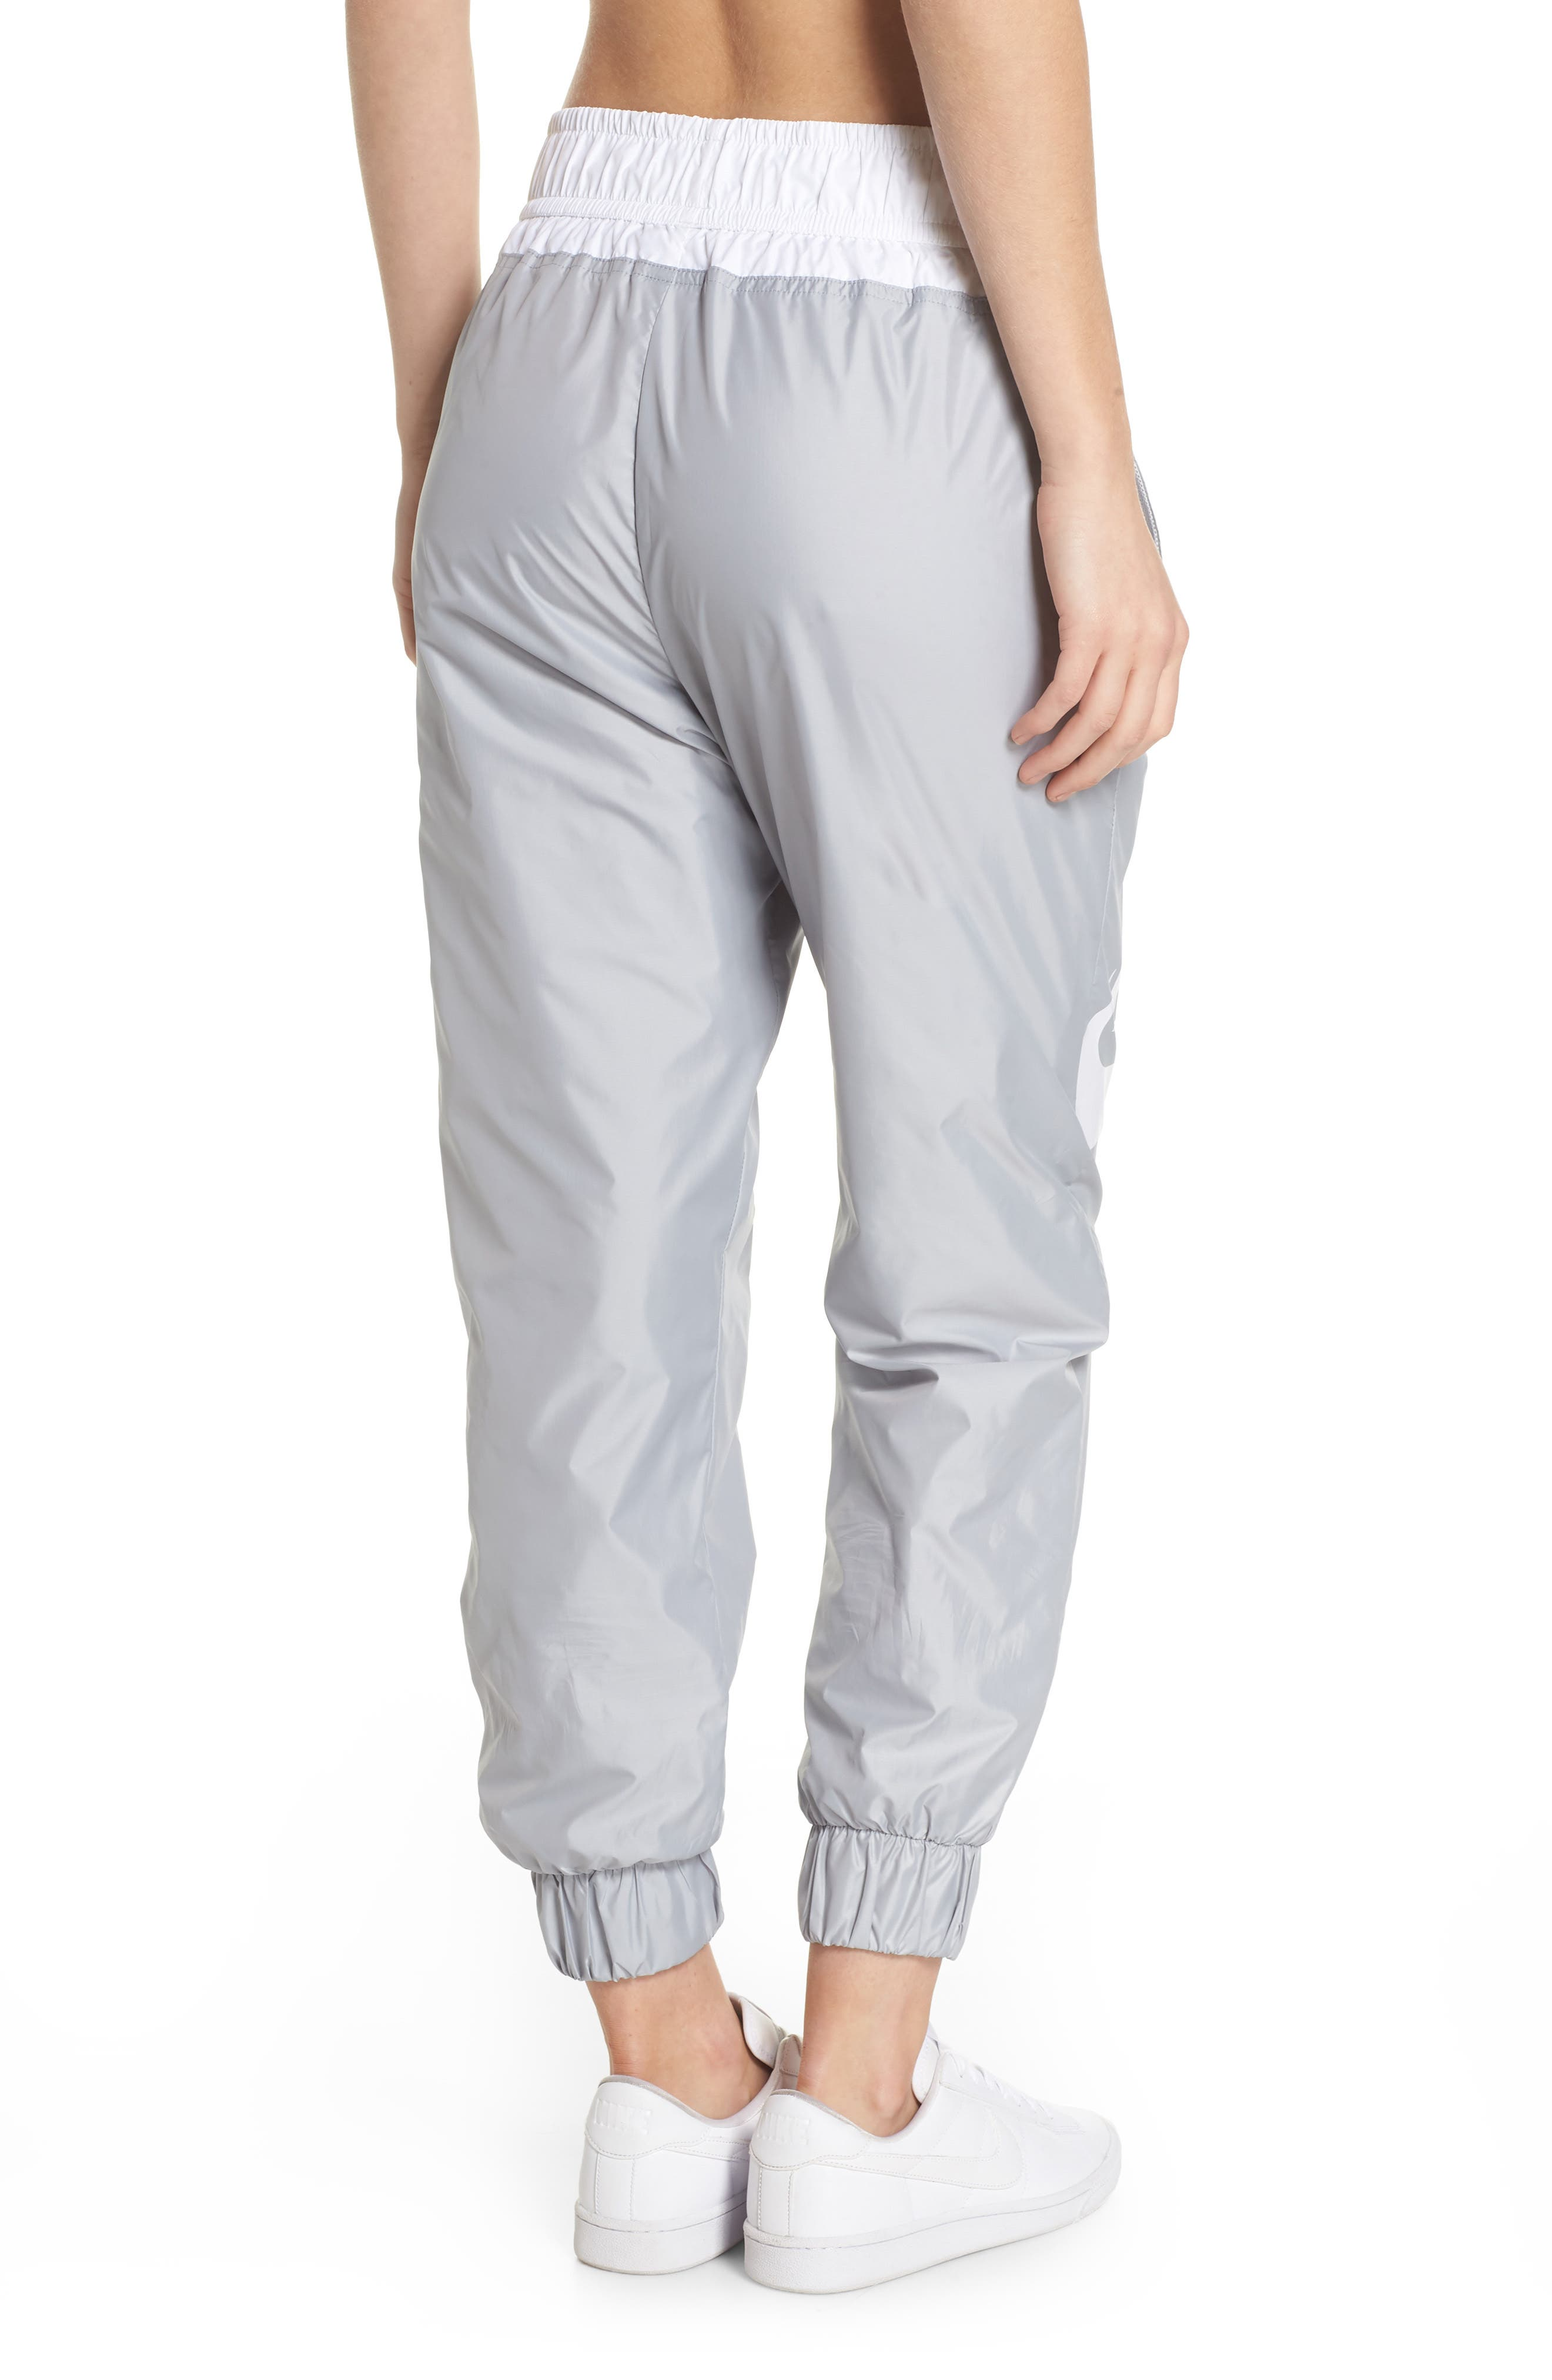 Sportswear Windrunner pants,                             Alternate thumbnail 2, color,                             Wolf Grey/ Summit White